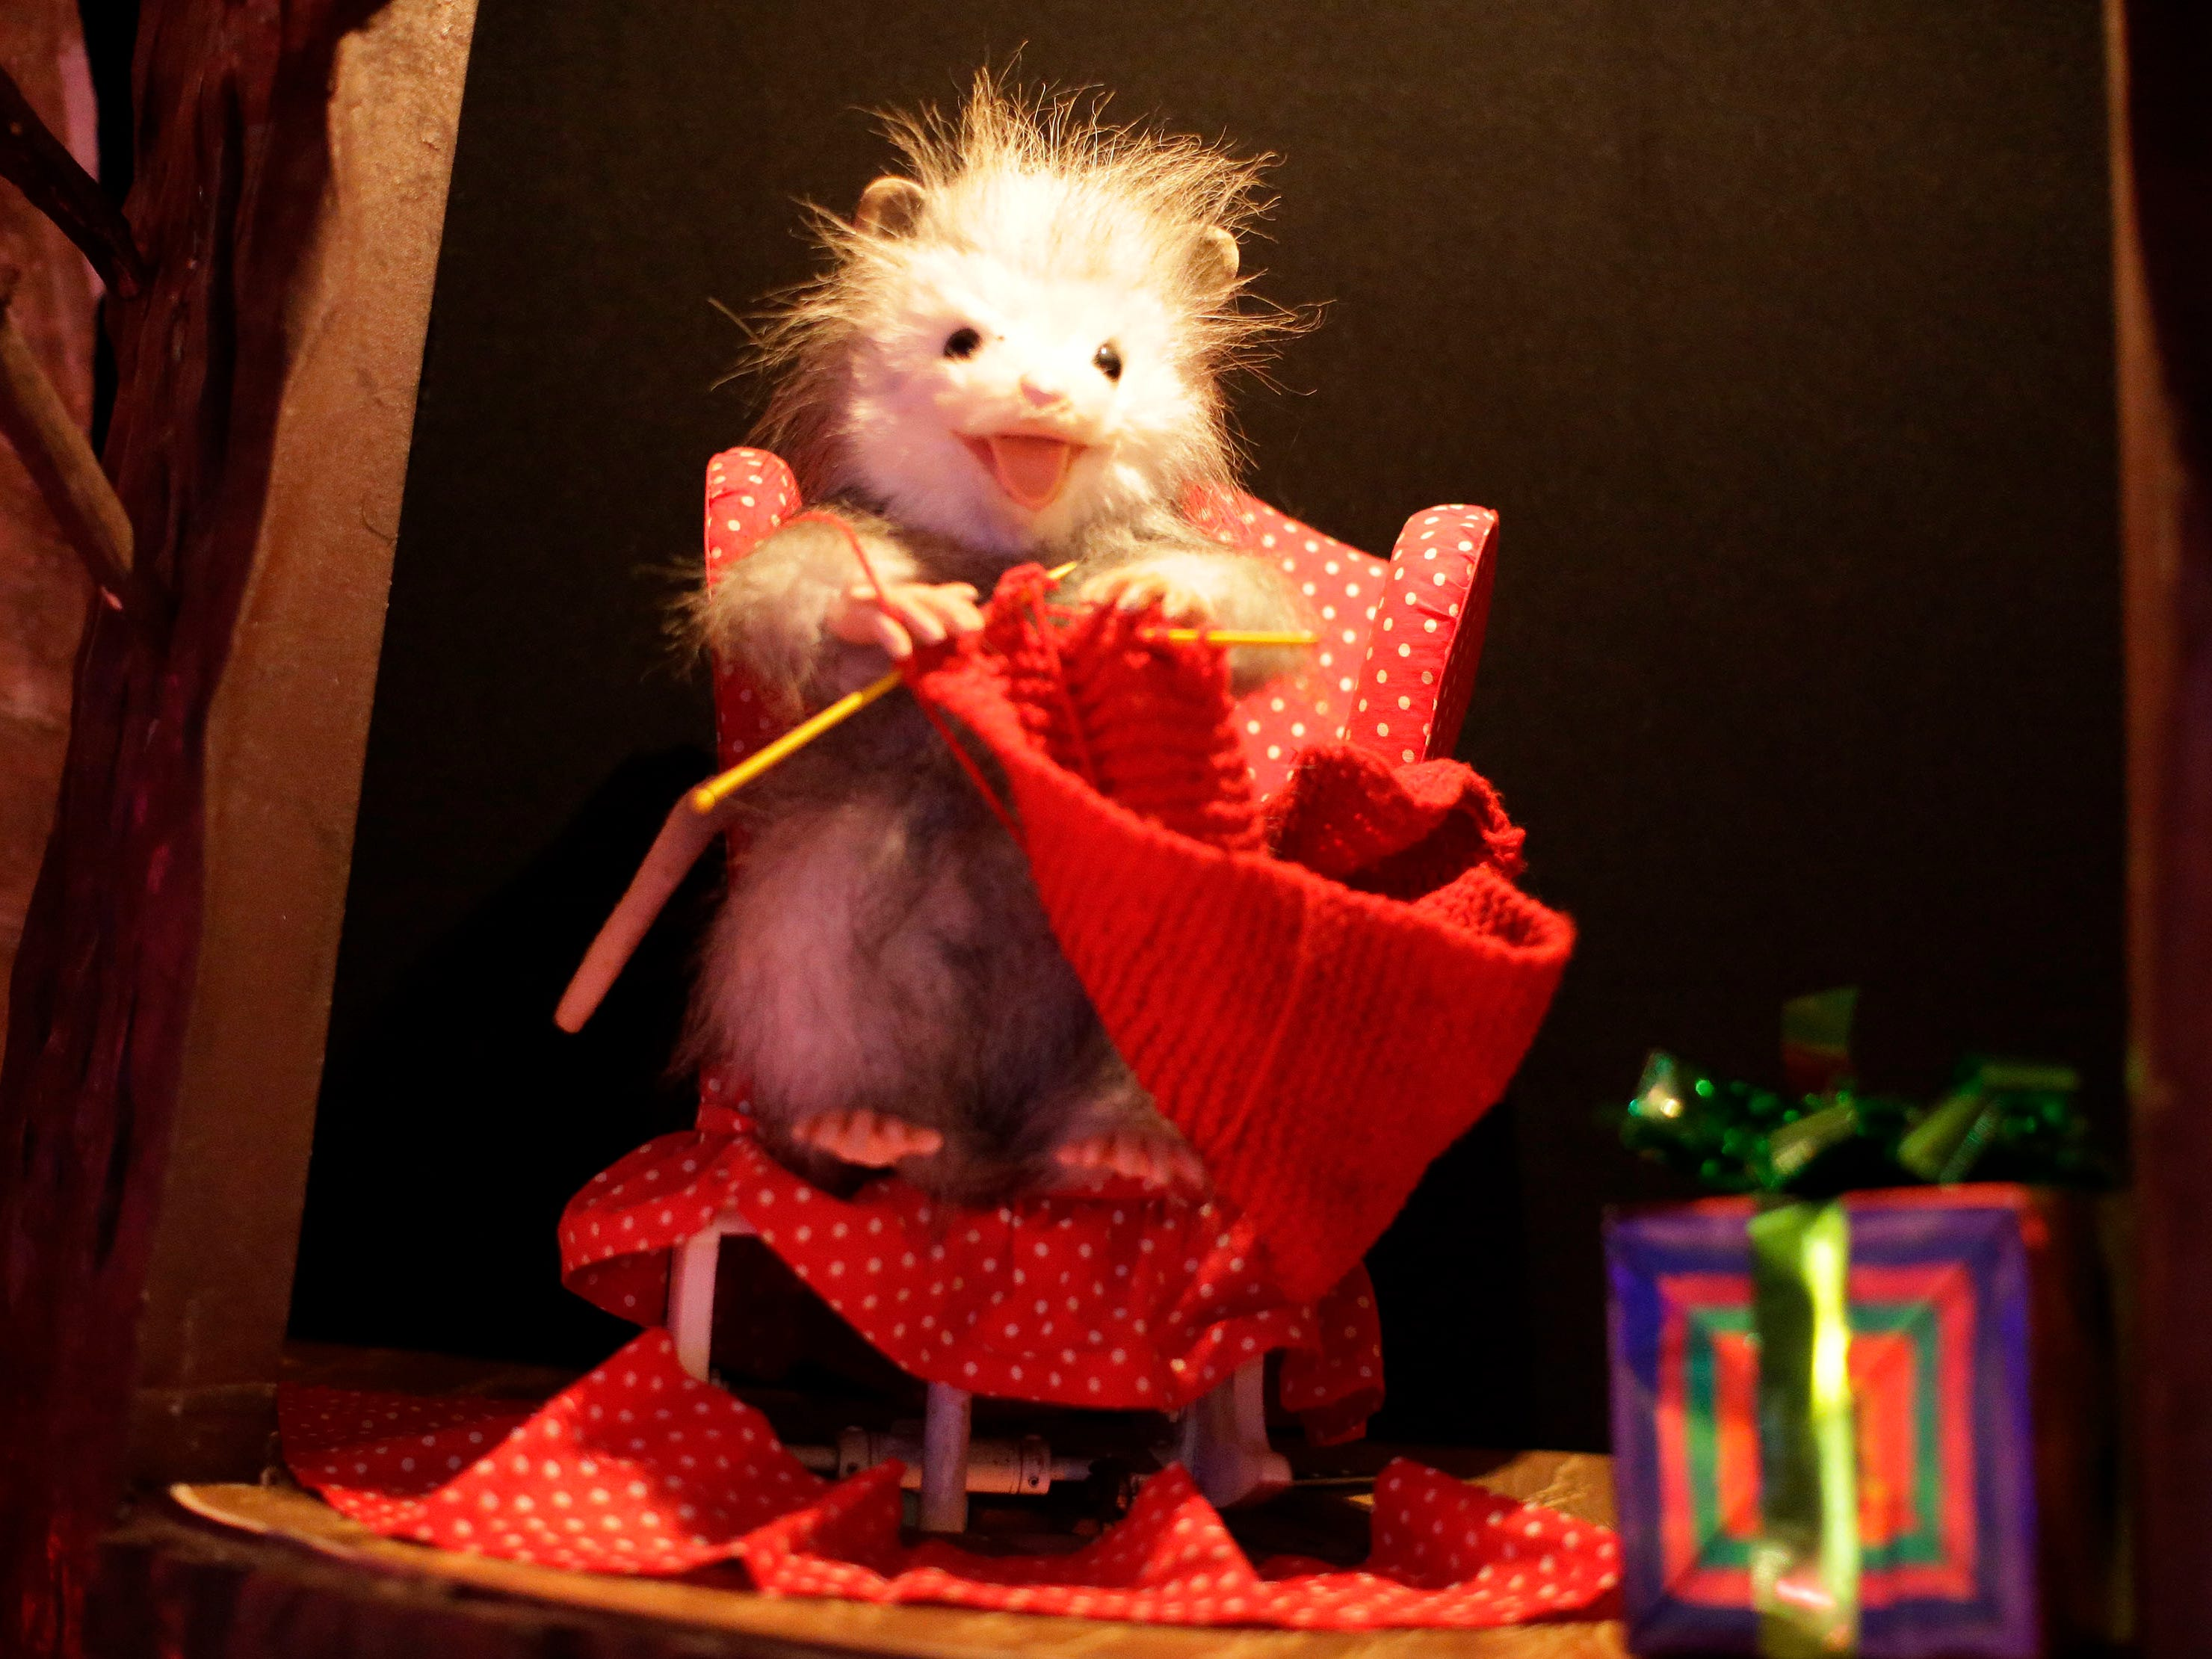 A possum knits up a sweater in an animation at the Sheboygan County Historical Museum's Holiday Memories, Friday, November 23, 2018, in Sheboygan, Wis.